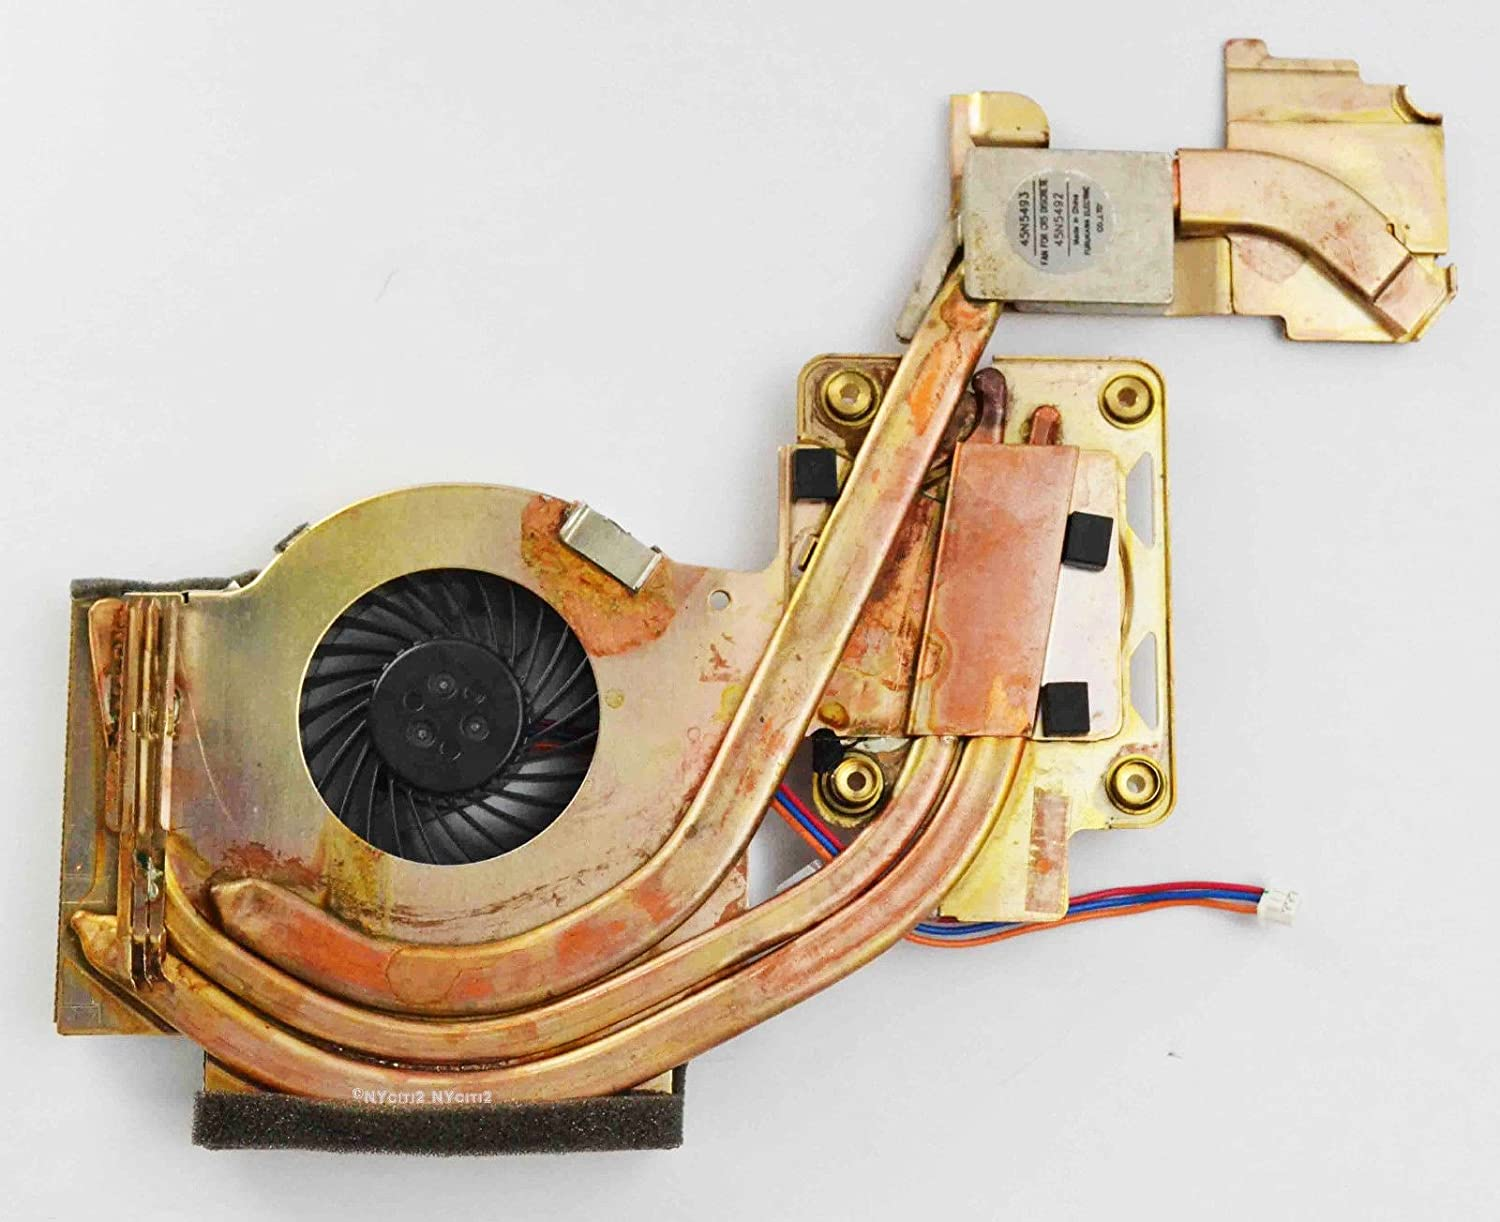 Simply Silver - New CPU Cooling Fan with Heatsink For IBM Lenovo W500 T500 45N5492 45N5493 - Unbranded